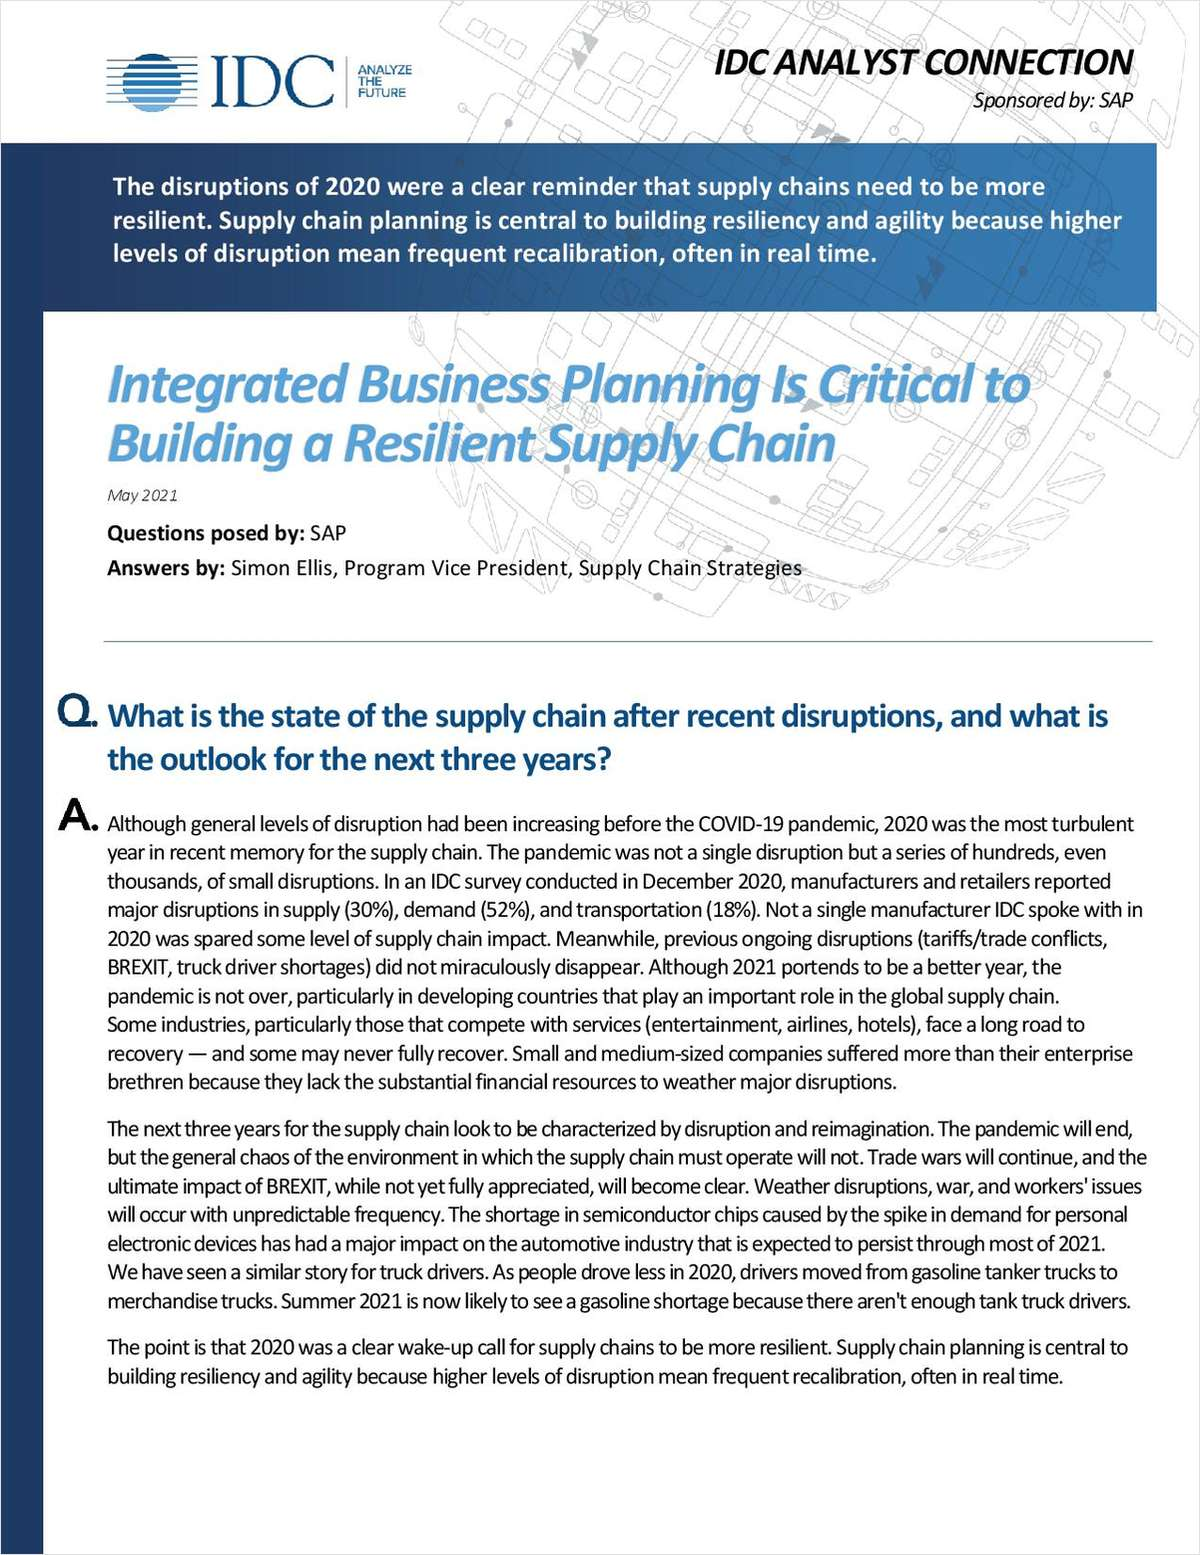 Integrated Business Planning Is Critical to Building a Resilient Supply Chain